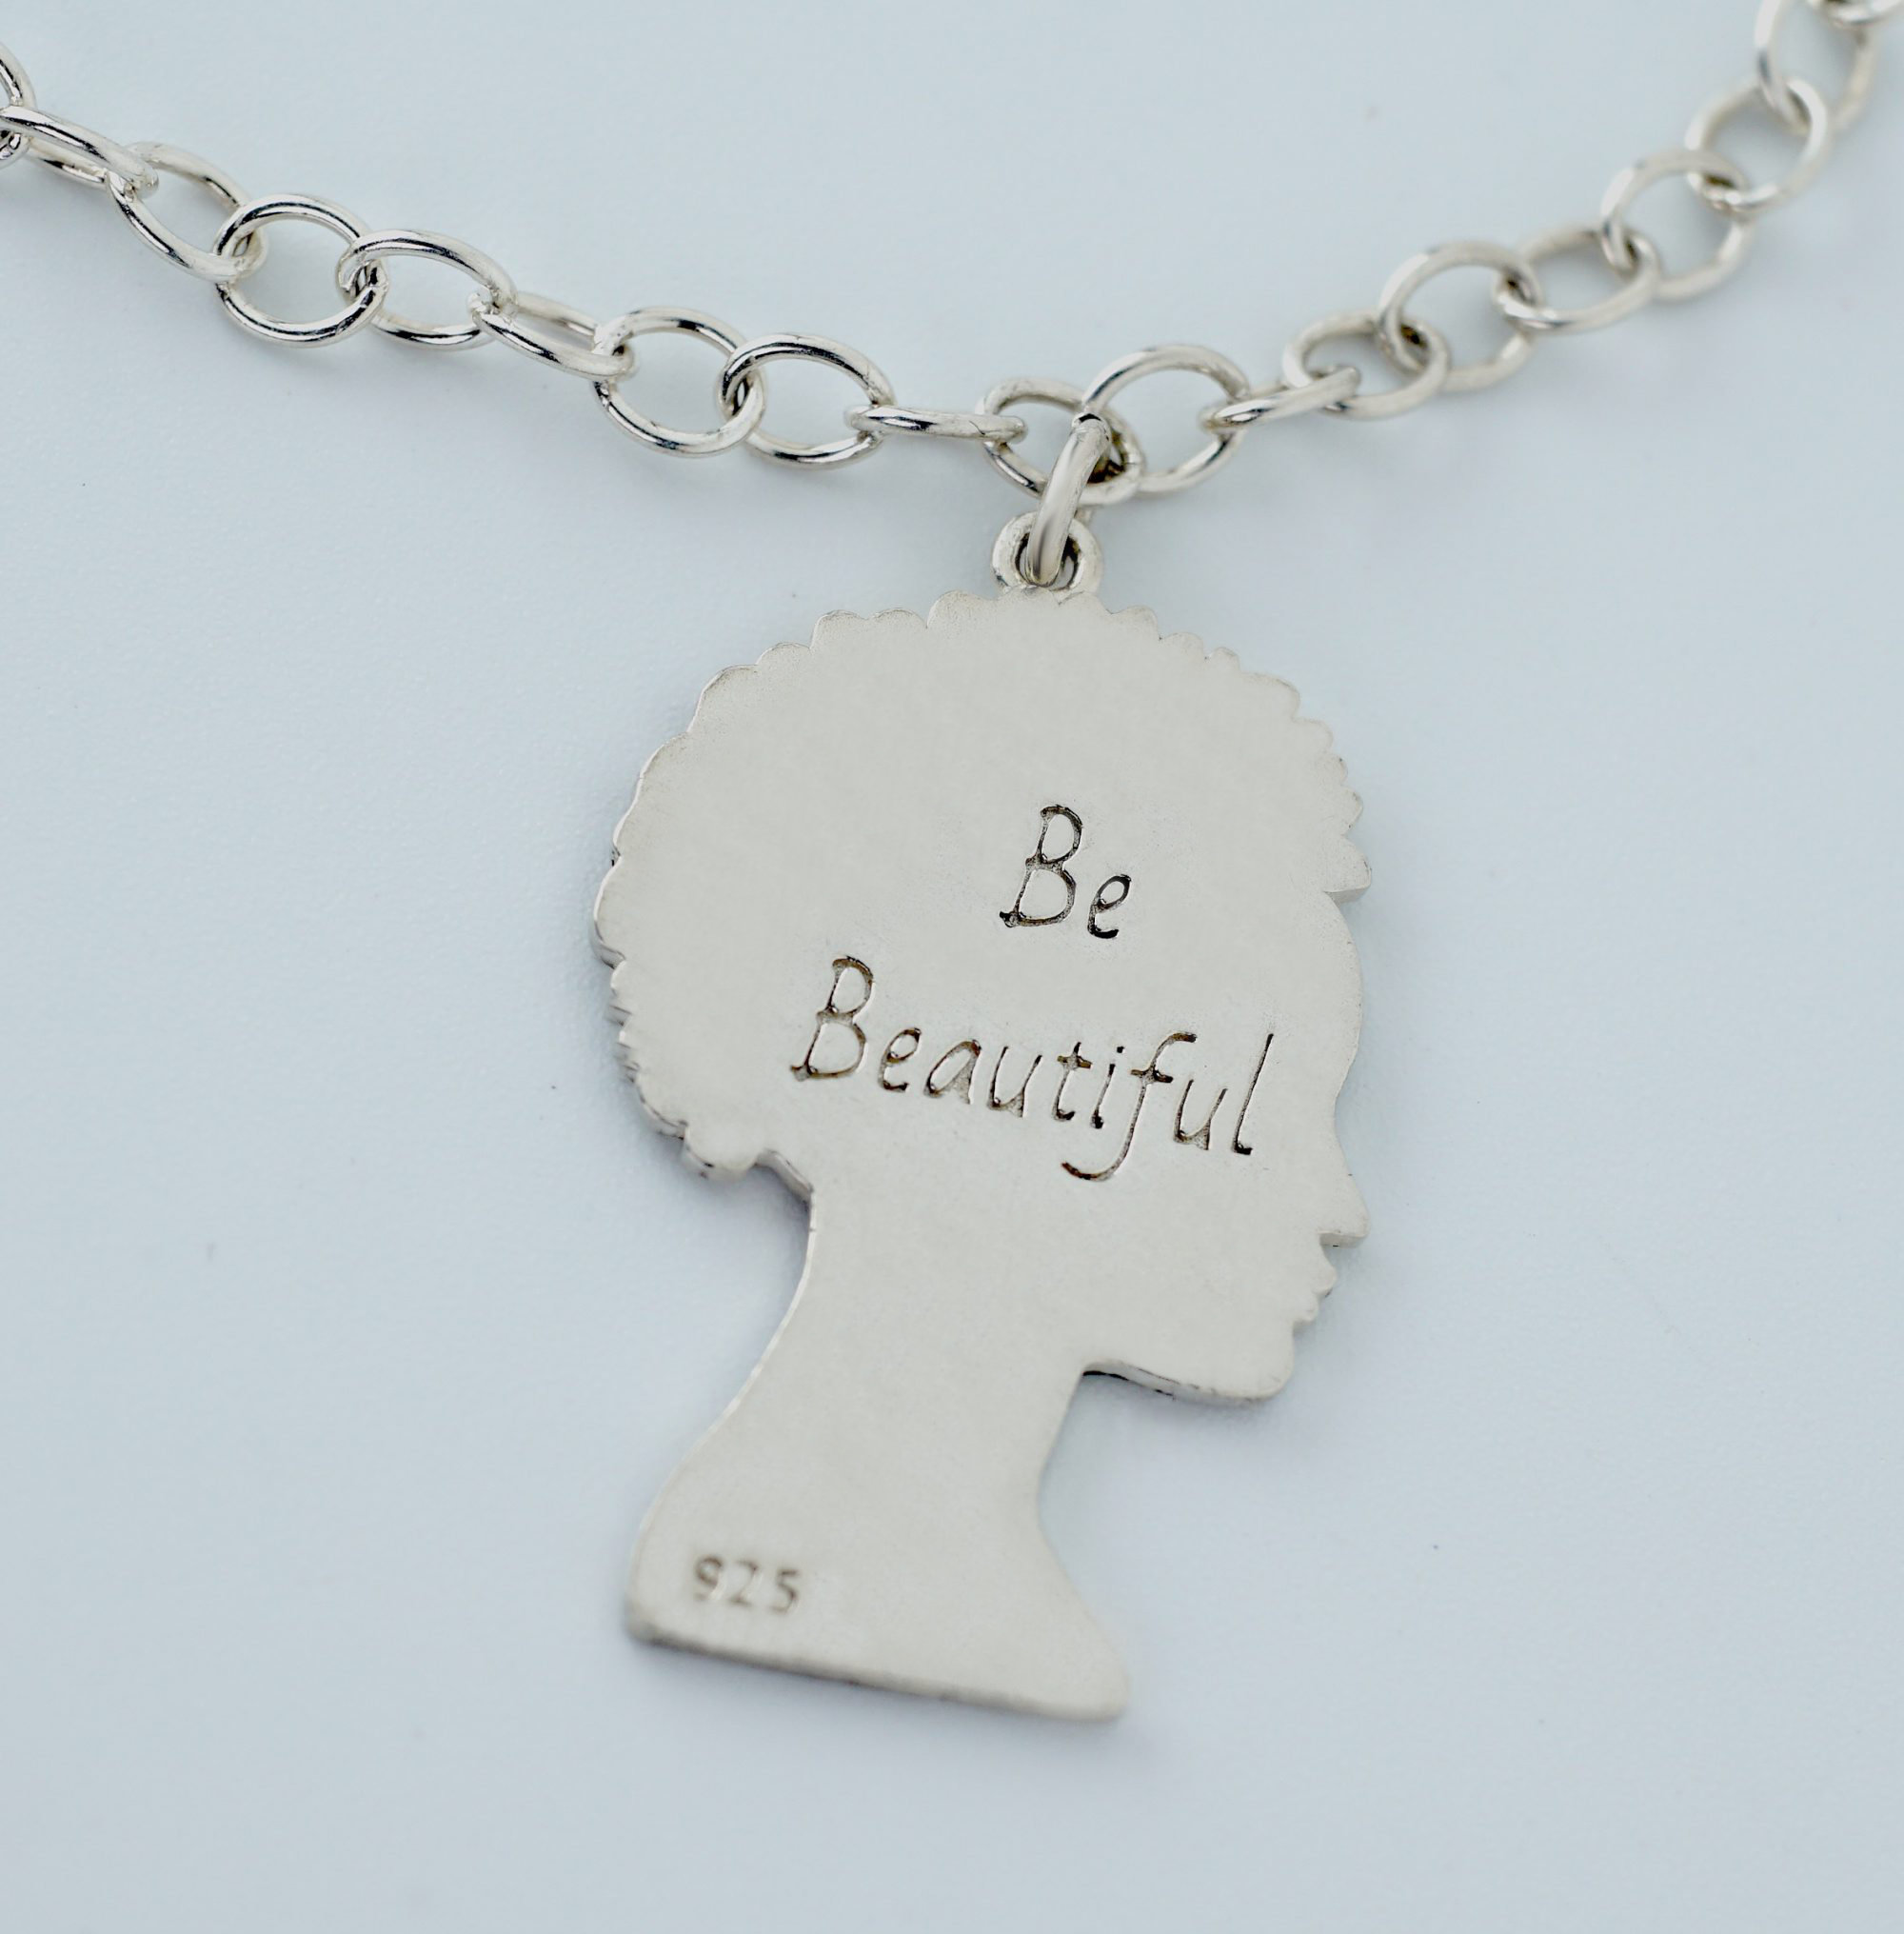 BE Beautiful Sterling Silver Necklace